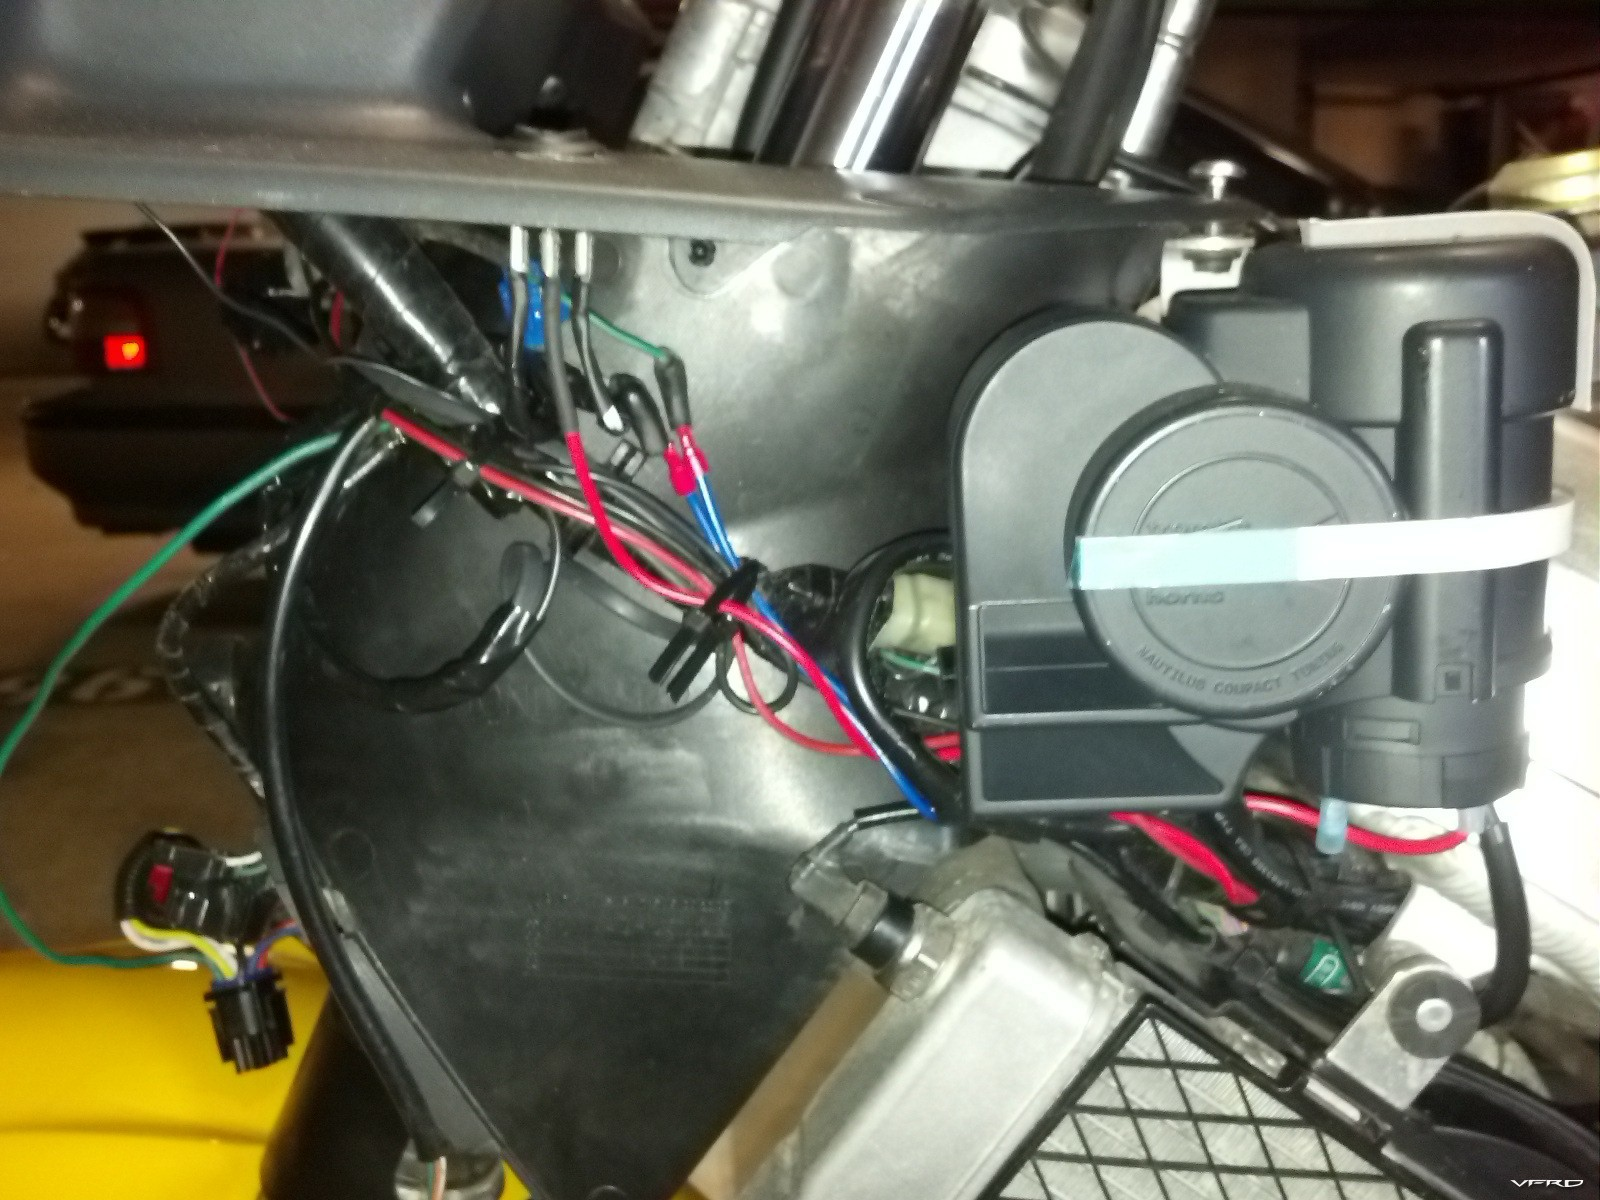 Stebel Horn Mount - Wiring and Protection